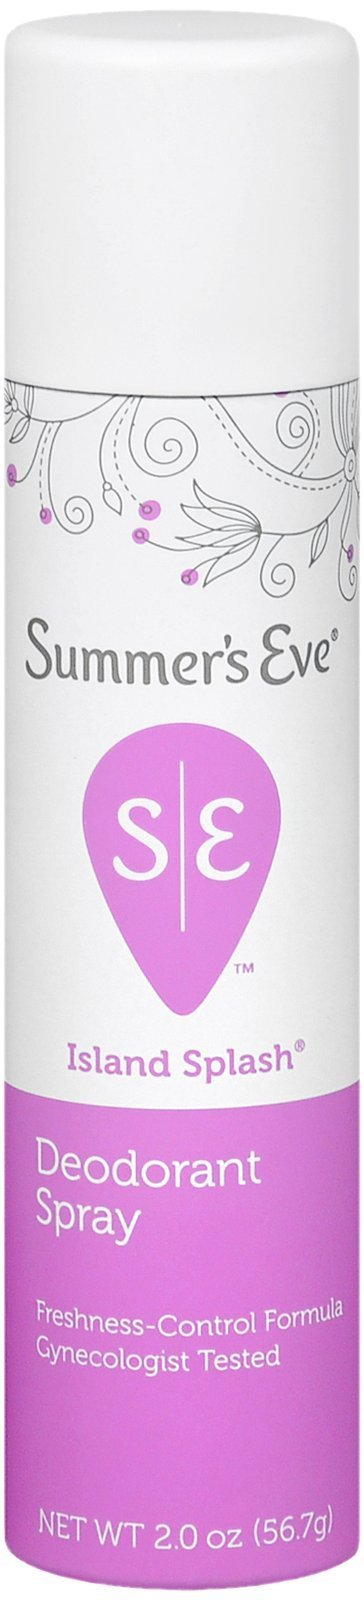 SUMMER'S EVE Feminine Deodorant Spray-Island Splash-2 oz, 2 pk